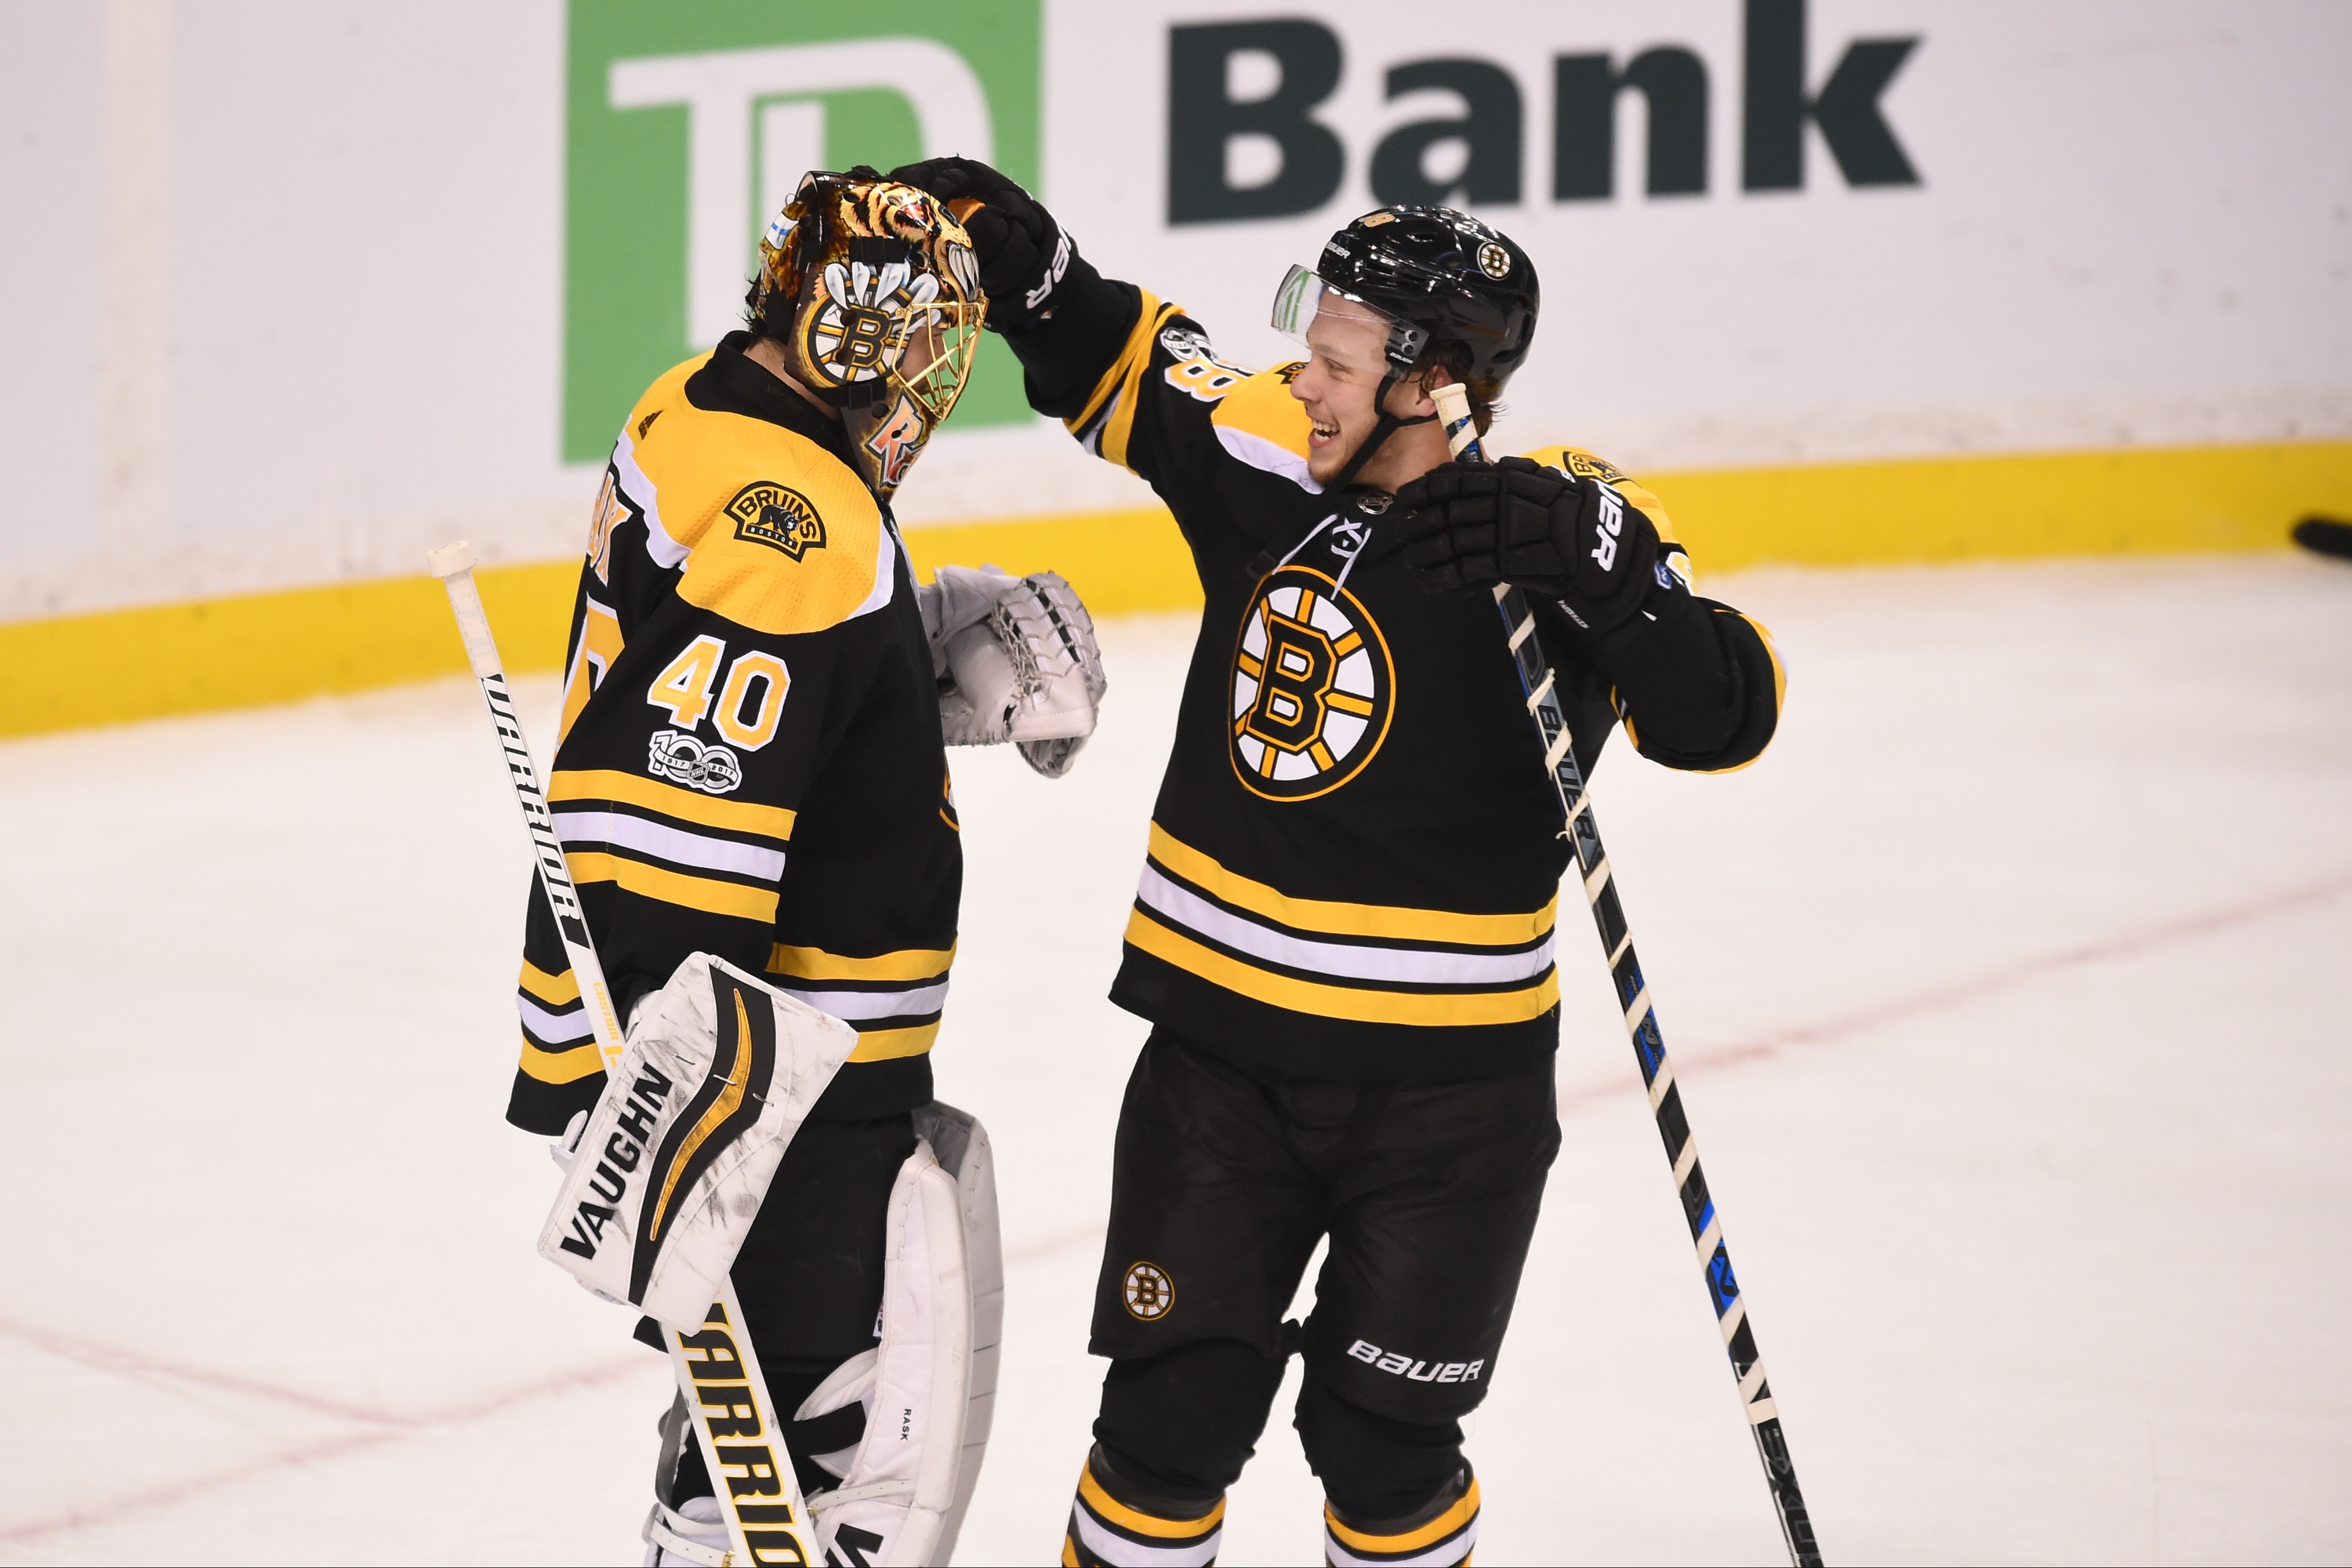 Bruins rally, beat Wings in overtime